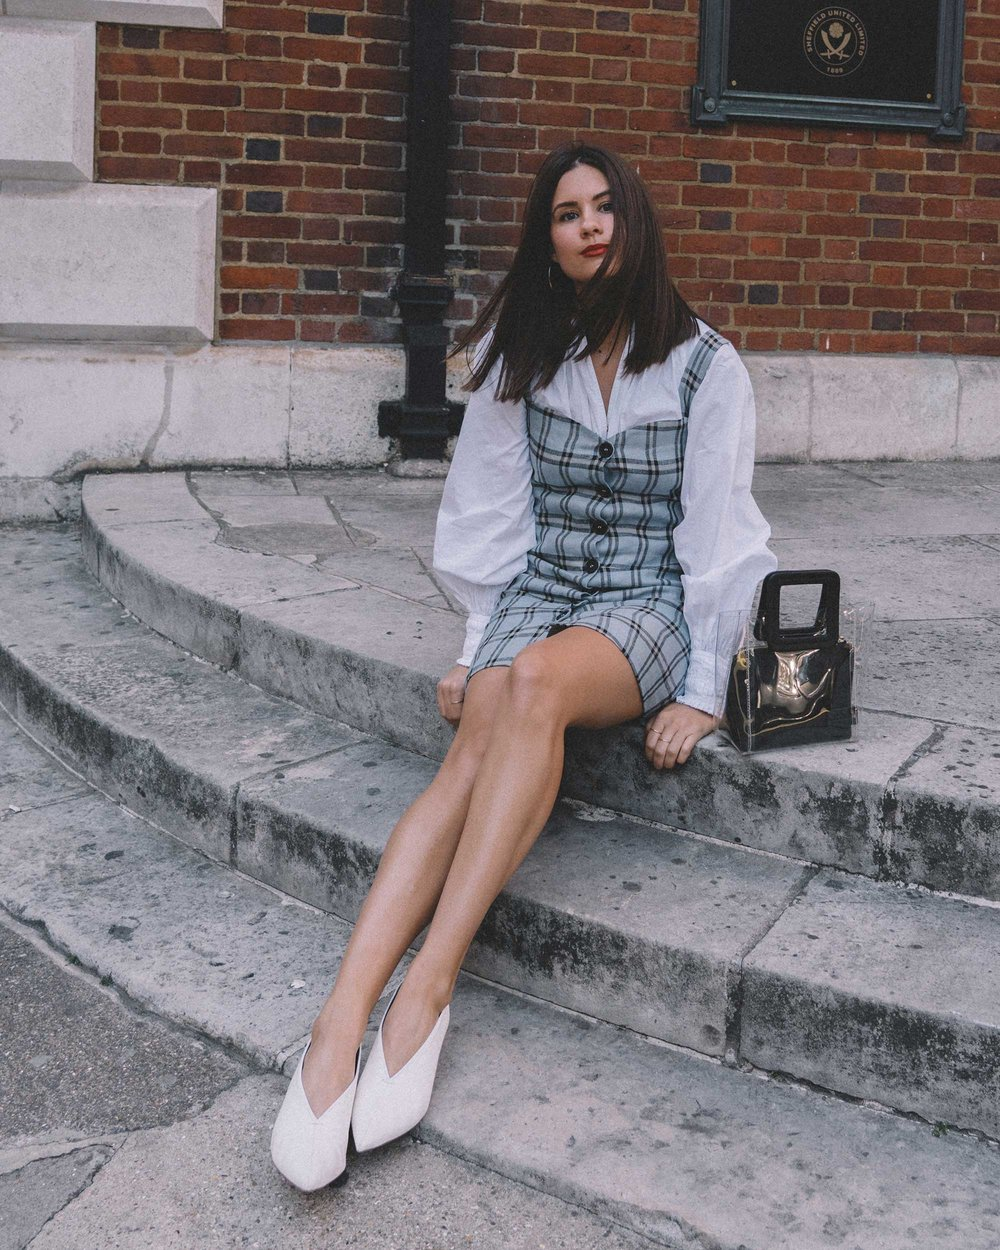 Reformation plaid button front mini dress, Joie Rickelle white blouse Top, London Fashion Week Outfit, Fall Plaid Dress, Fall Plaid Outfit15.jpg